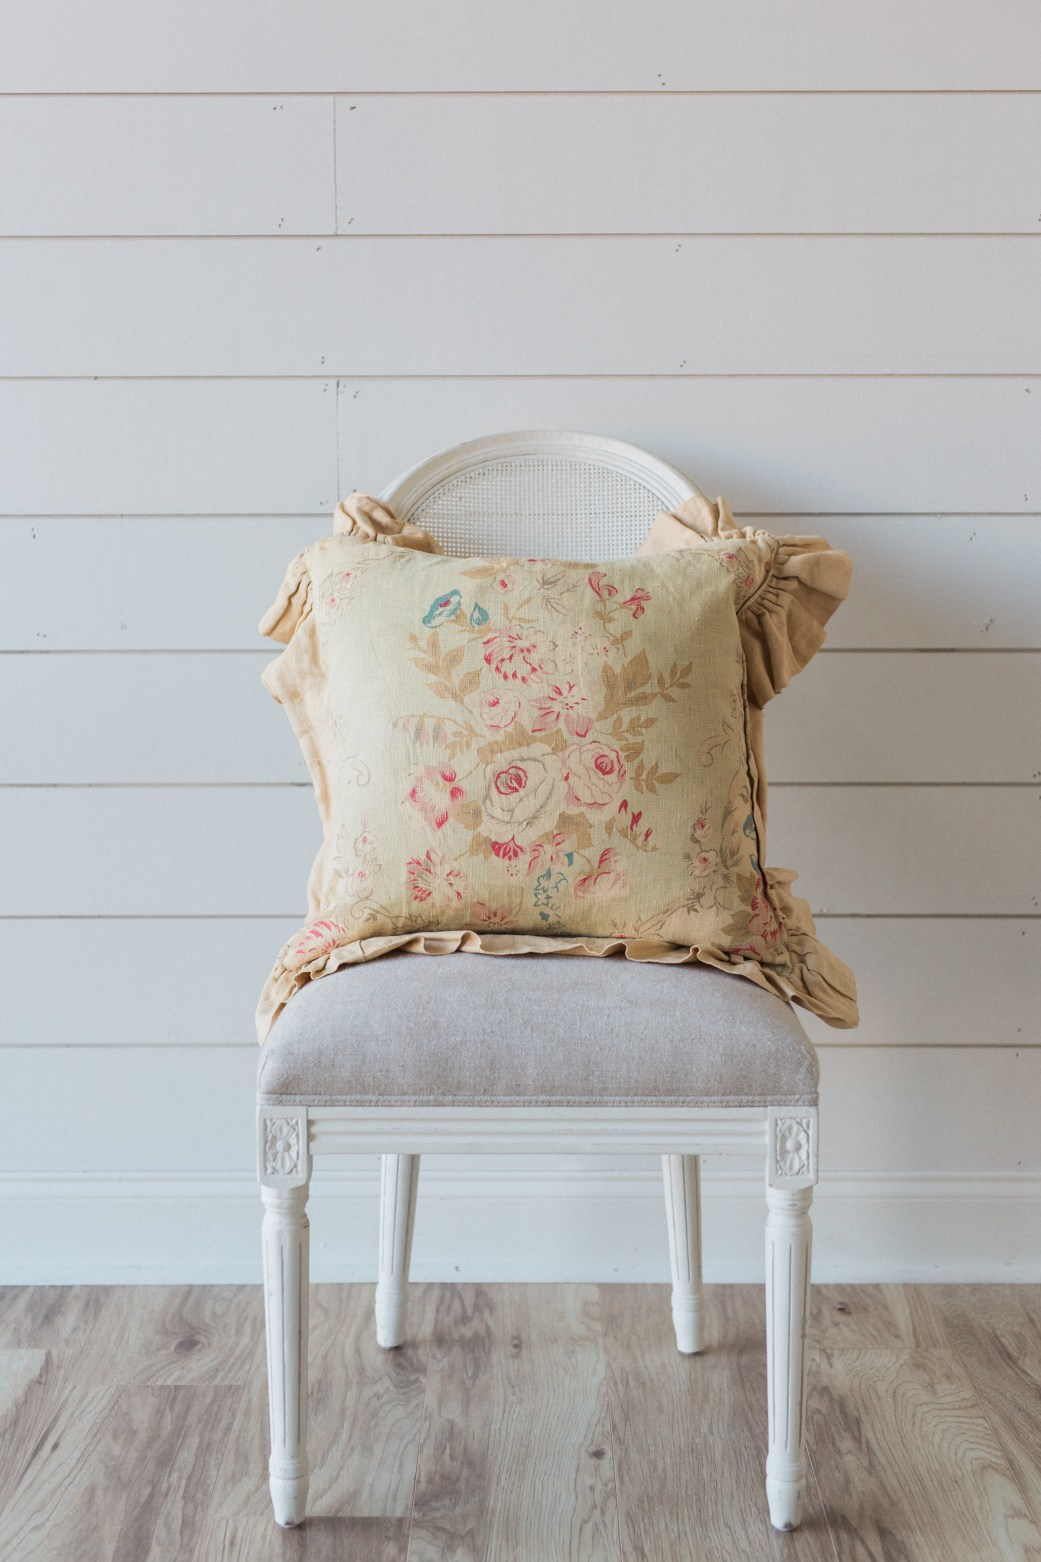 Pillows + Throws + Rugs, Cottage Floral Pillow